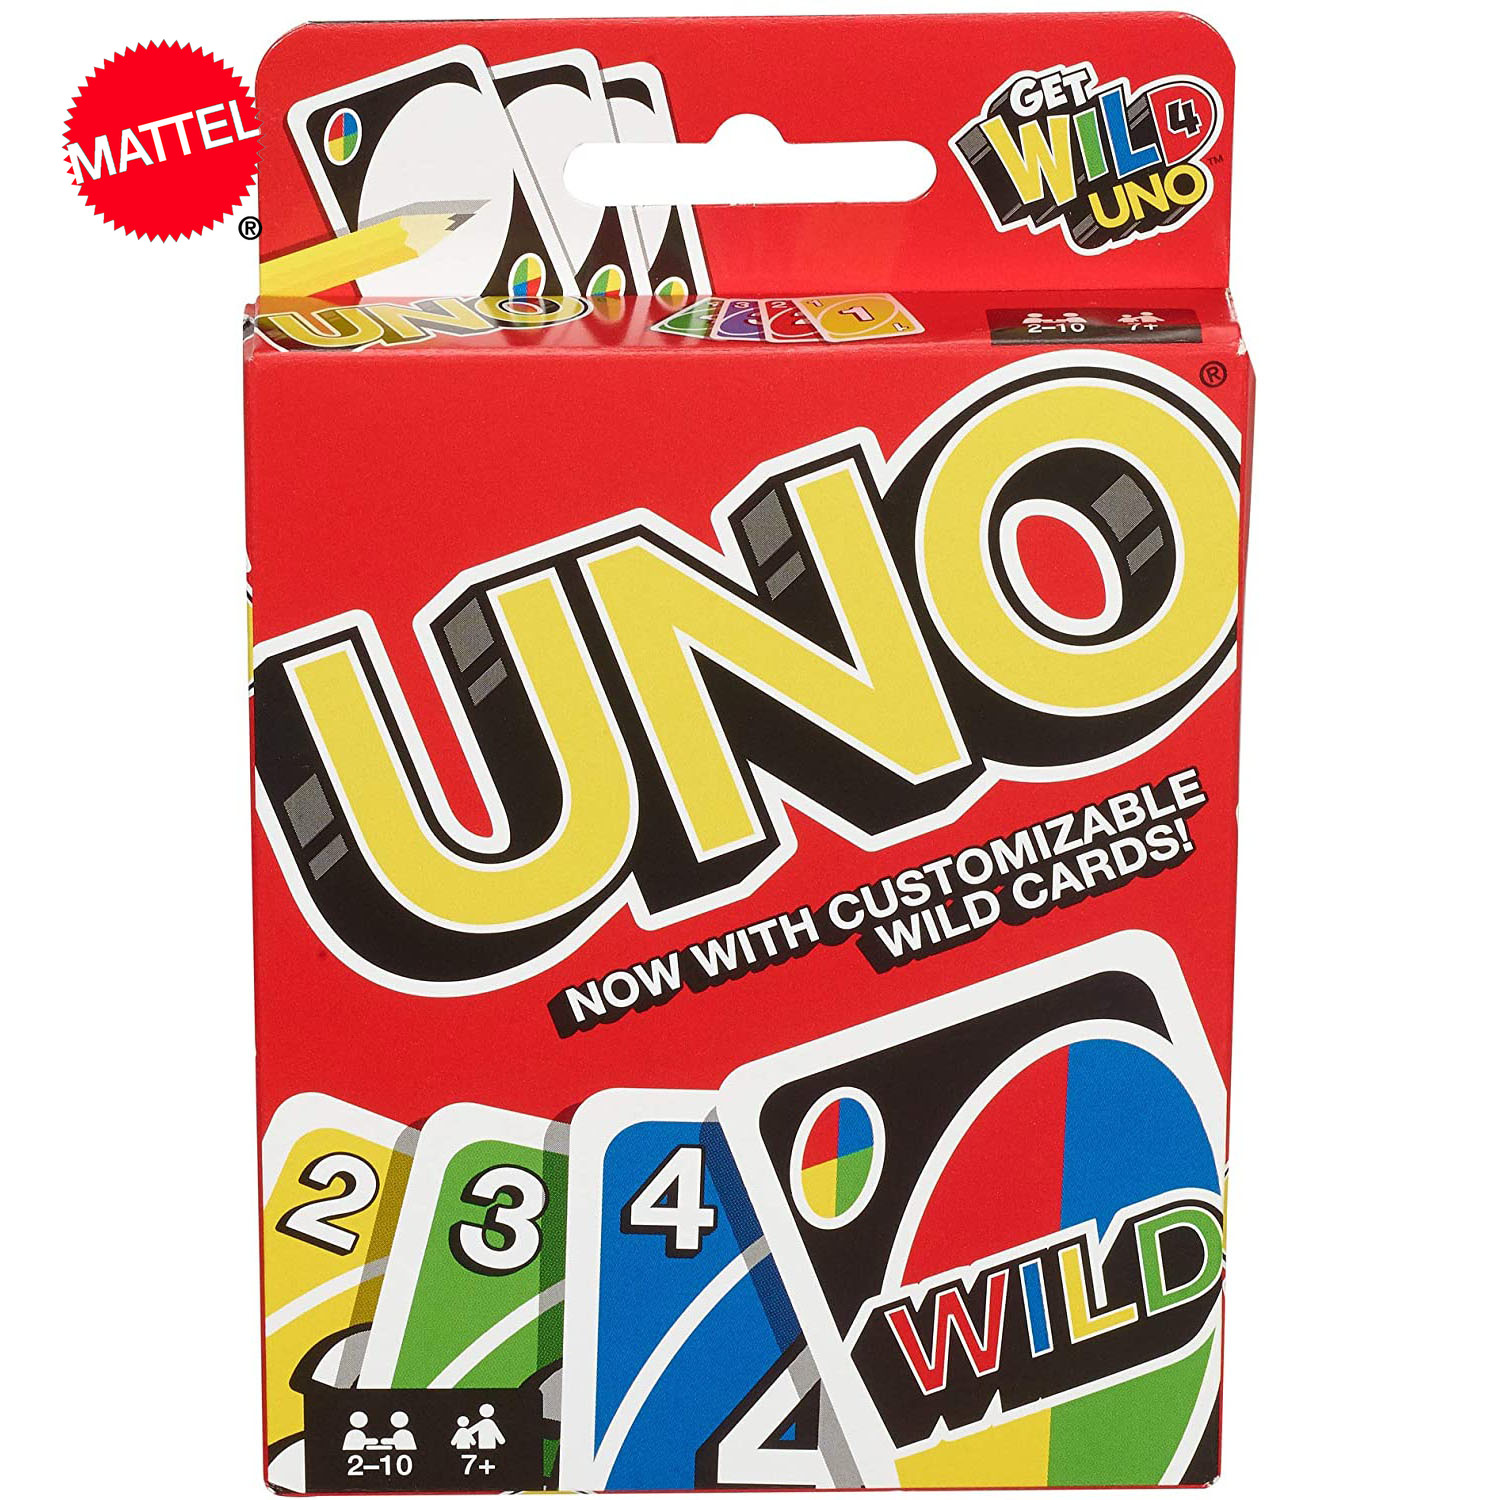 Mattel Games UNO Kartenspiel Casual Home Entertainment UNO Board Game Card Playing Party Toys